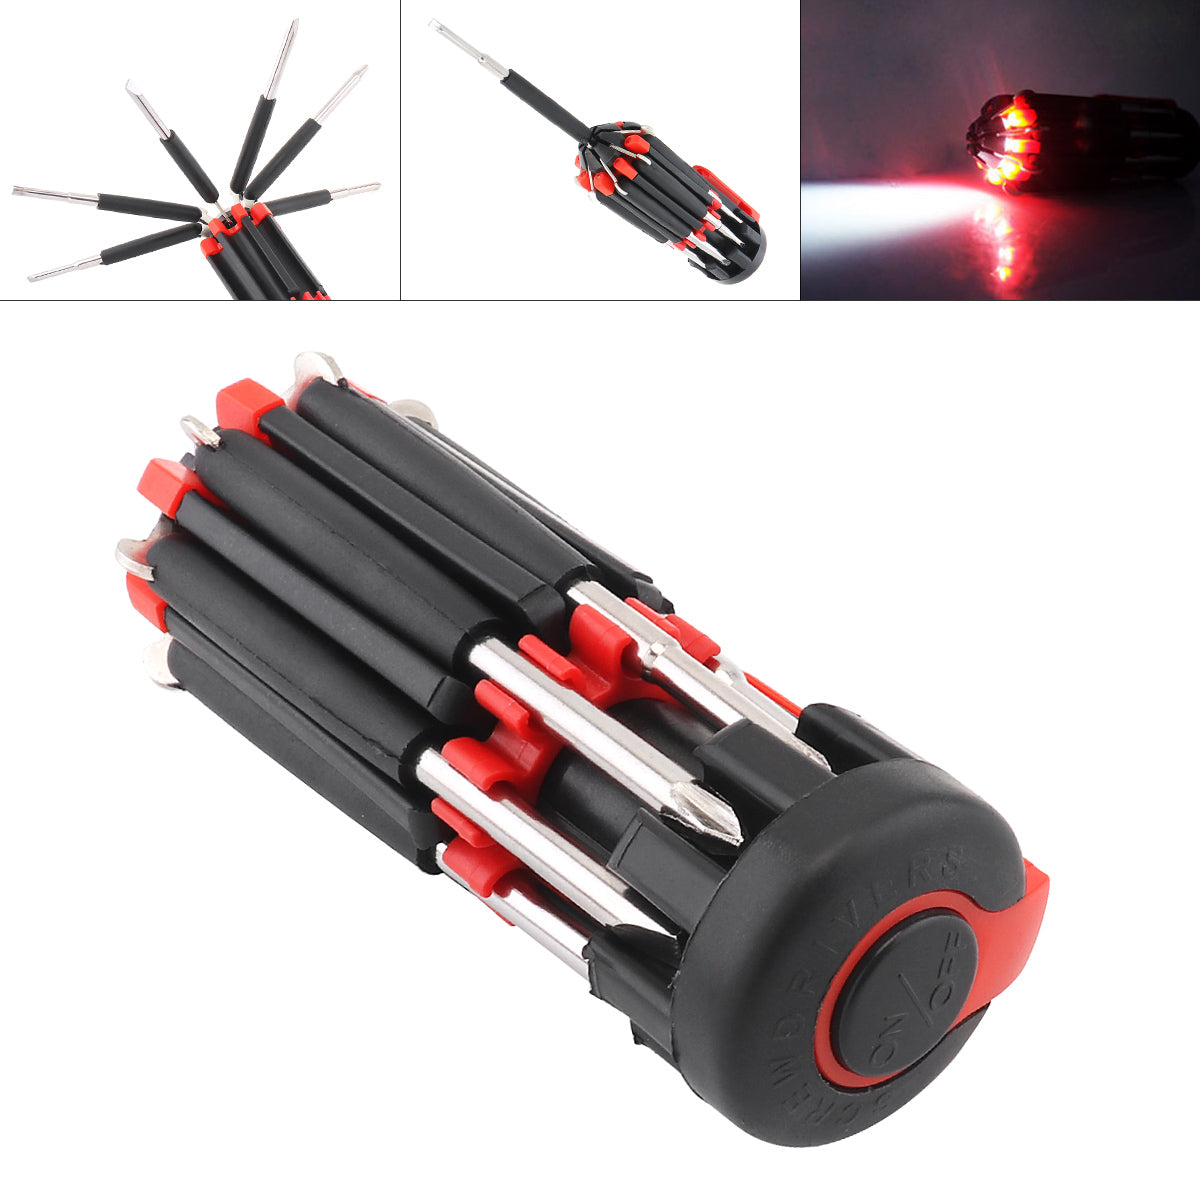 8-in-1 multifunctional Phillips screwdriver (for household appliances, cars)